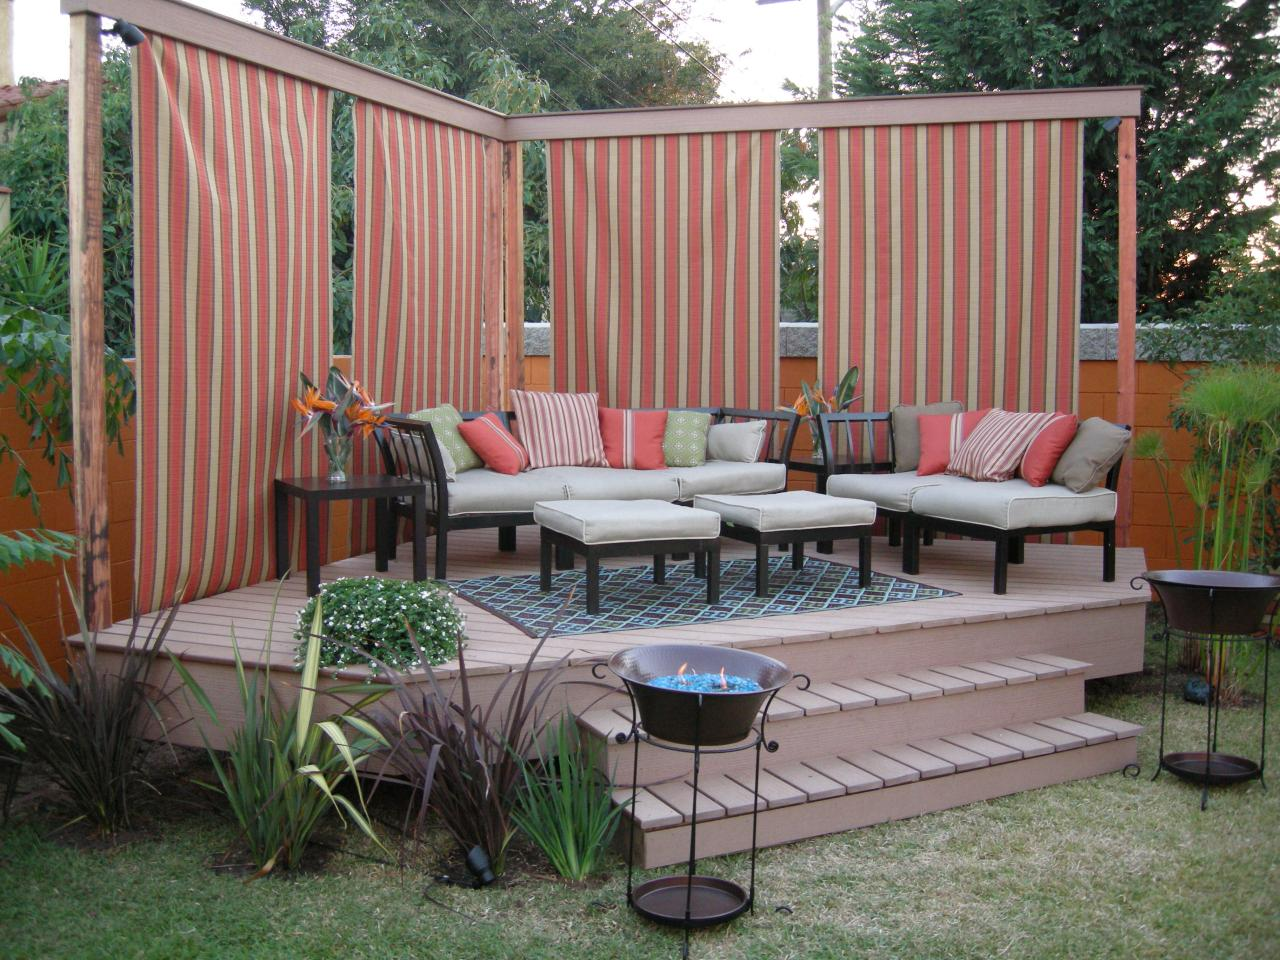 14 Floating Decks of All Kinds for the Perfect Outdoor ... on Floating Patio Ideas id=62873